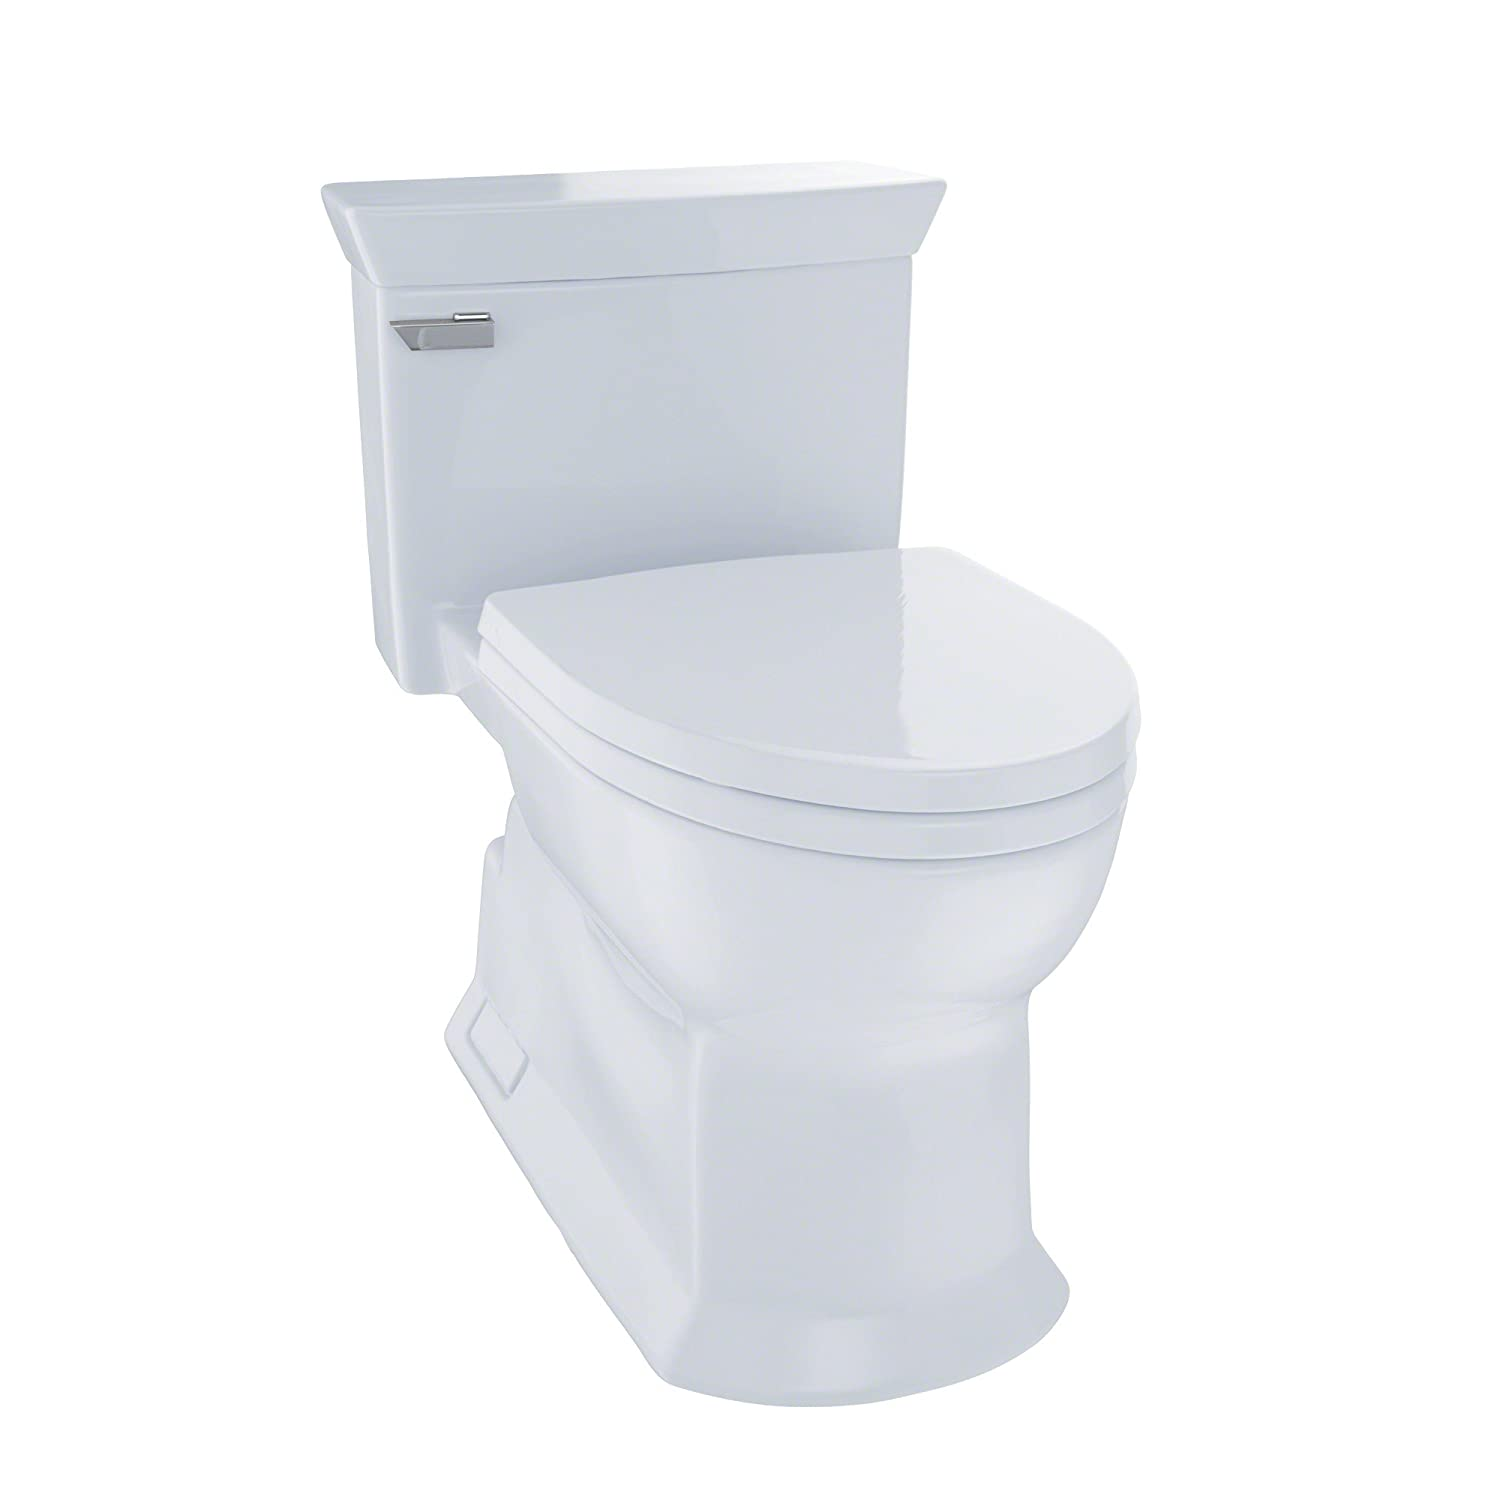 Top 8 Best Toto Toilet Reviews For 2018 | The Water Closet of the future